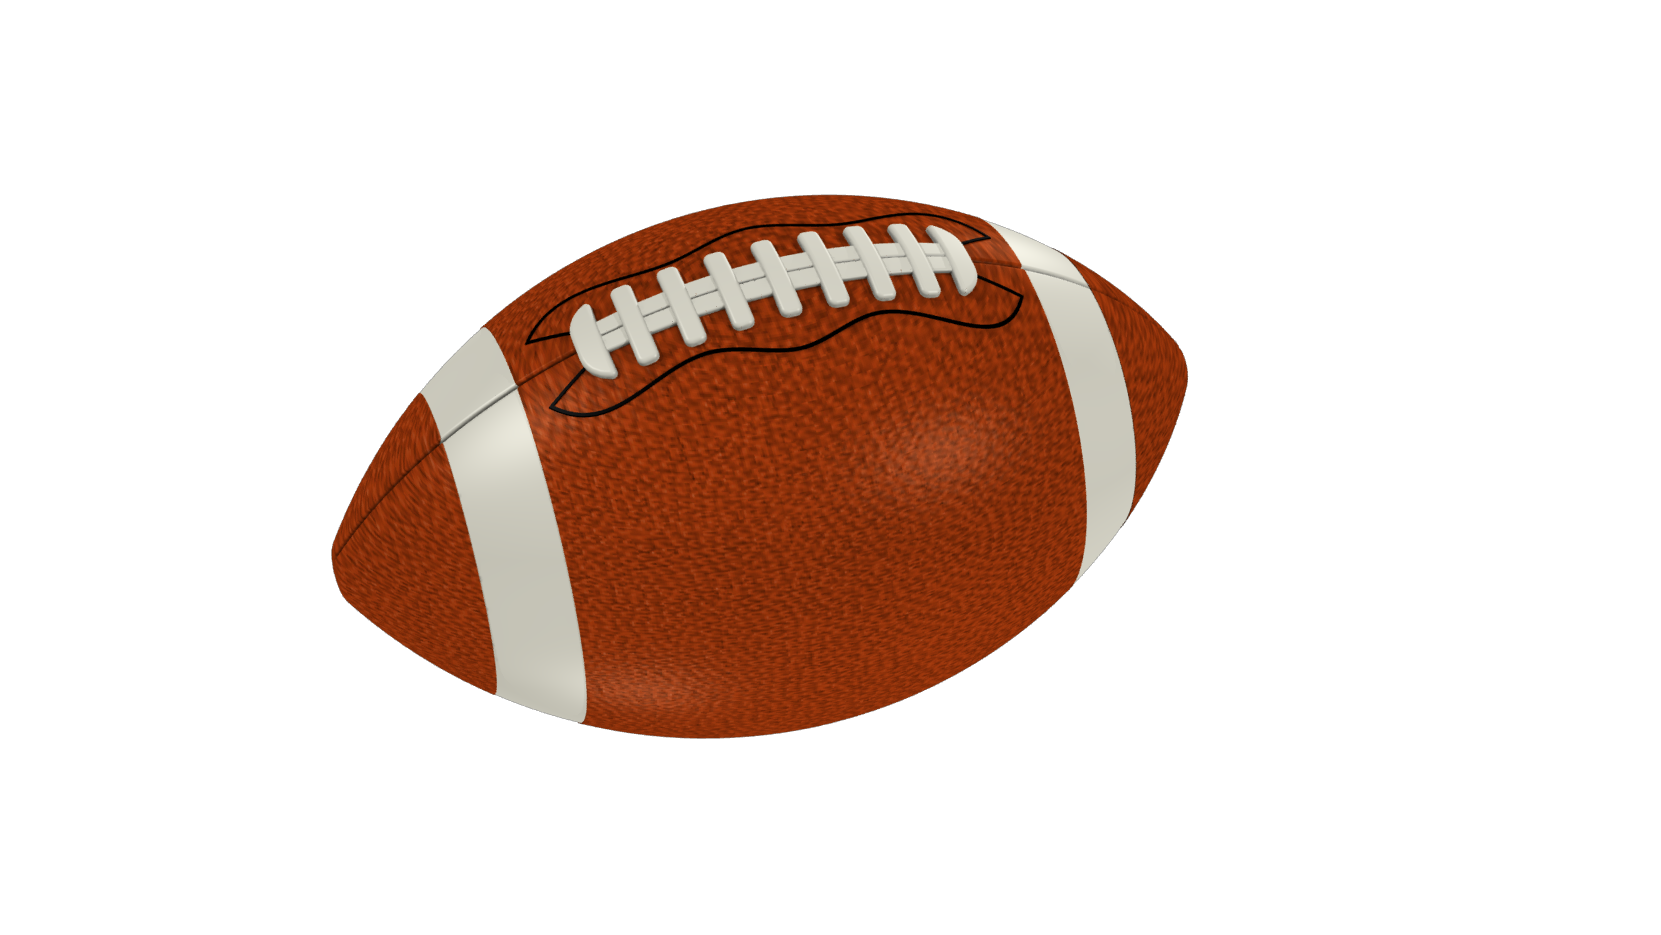 Football clipart clear background Ball PNG Football American Football